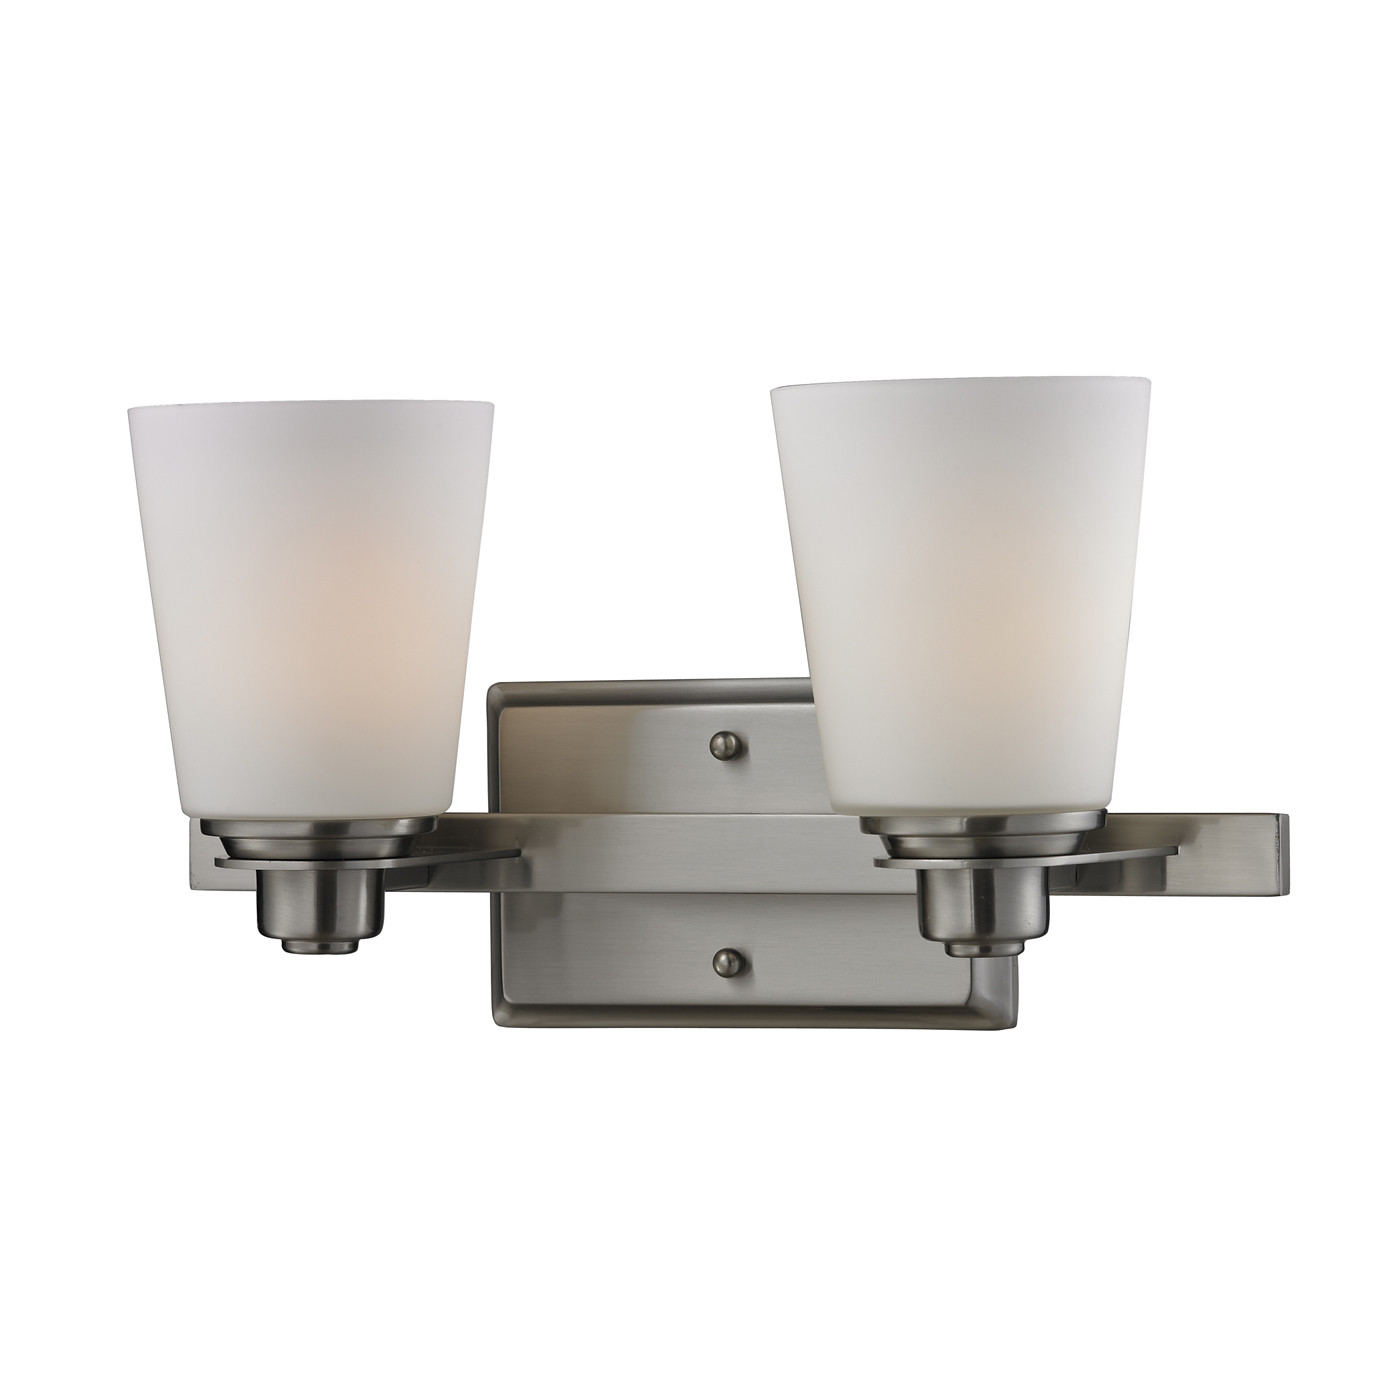 Best ideas about Lowes Bathroom Lighting . Save or Pin 22 Cool Bathroom Lighting Fixtures Lowes Now.